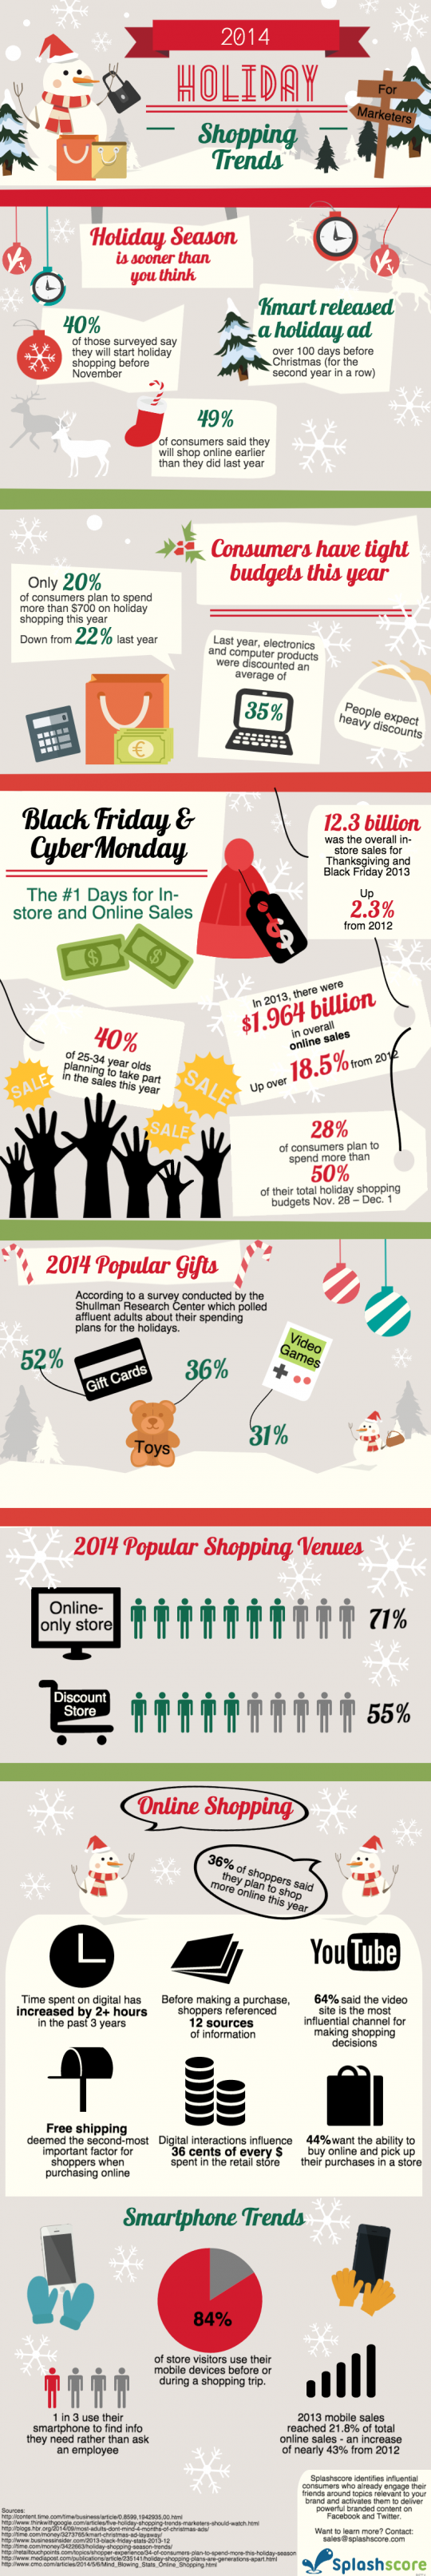 2014 Holiday Shopping Trends